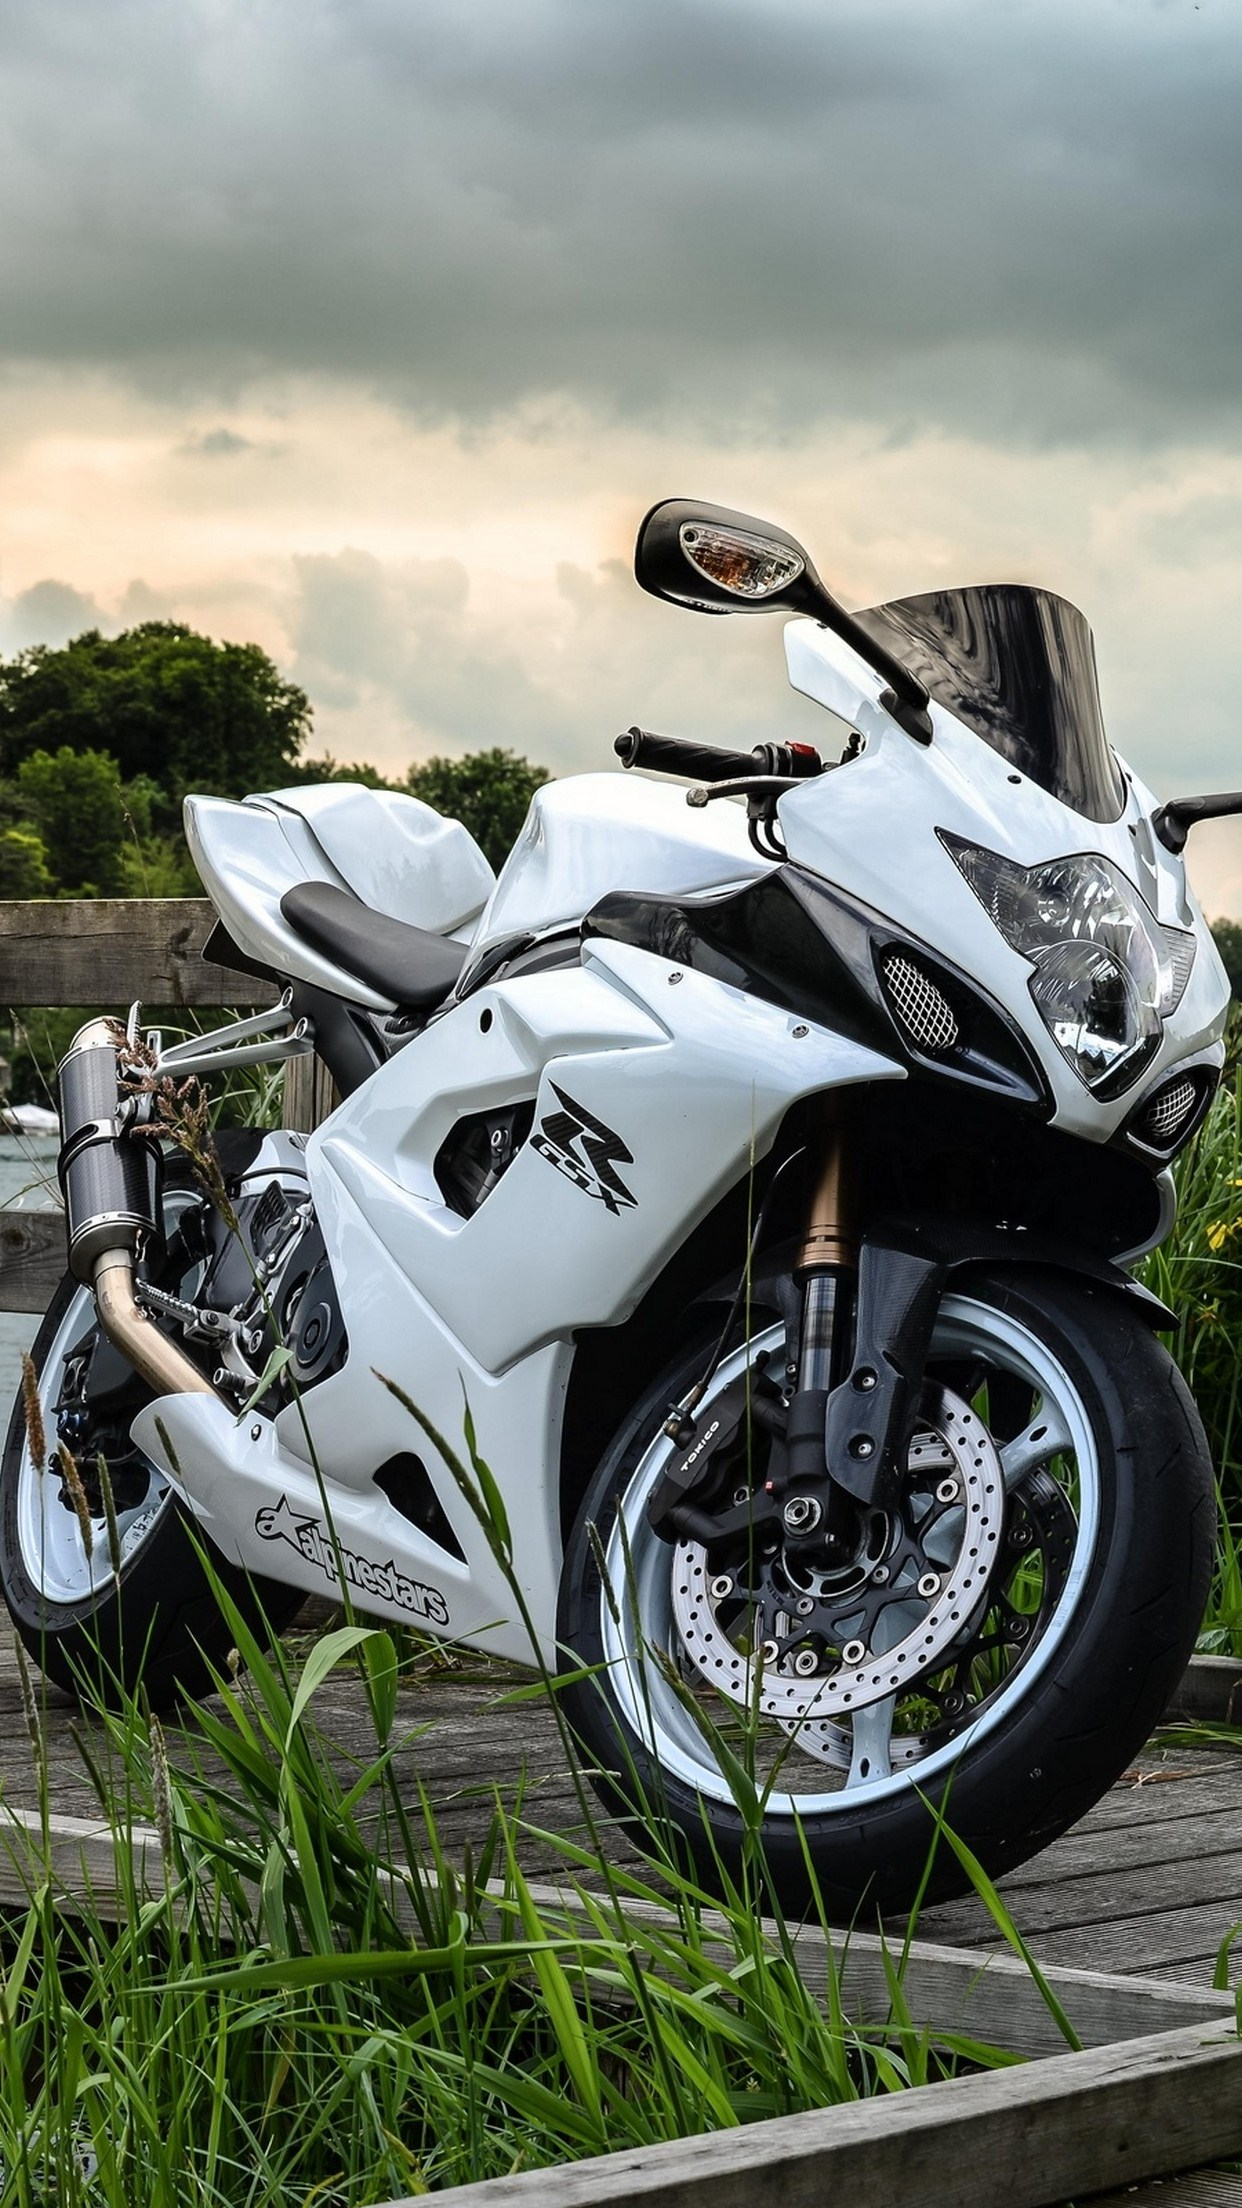 Iphone 4s Wallpapers Free Moto Suzuki Gsx Wallpaper For Iphone X 8 7 6 Free